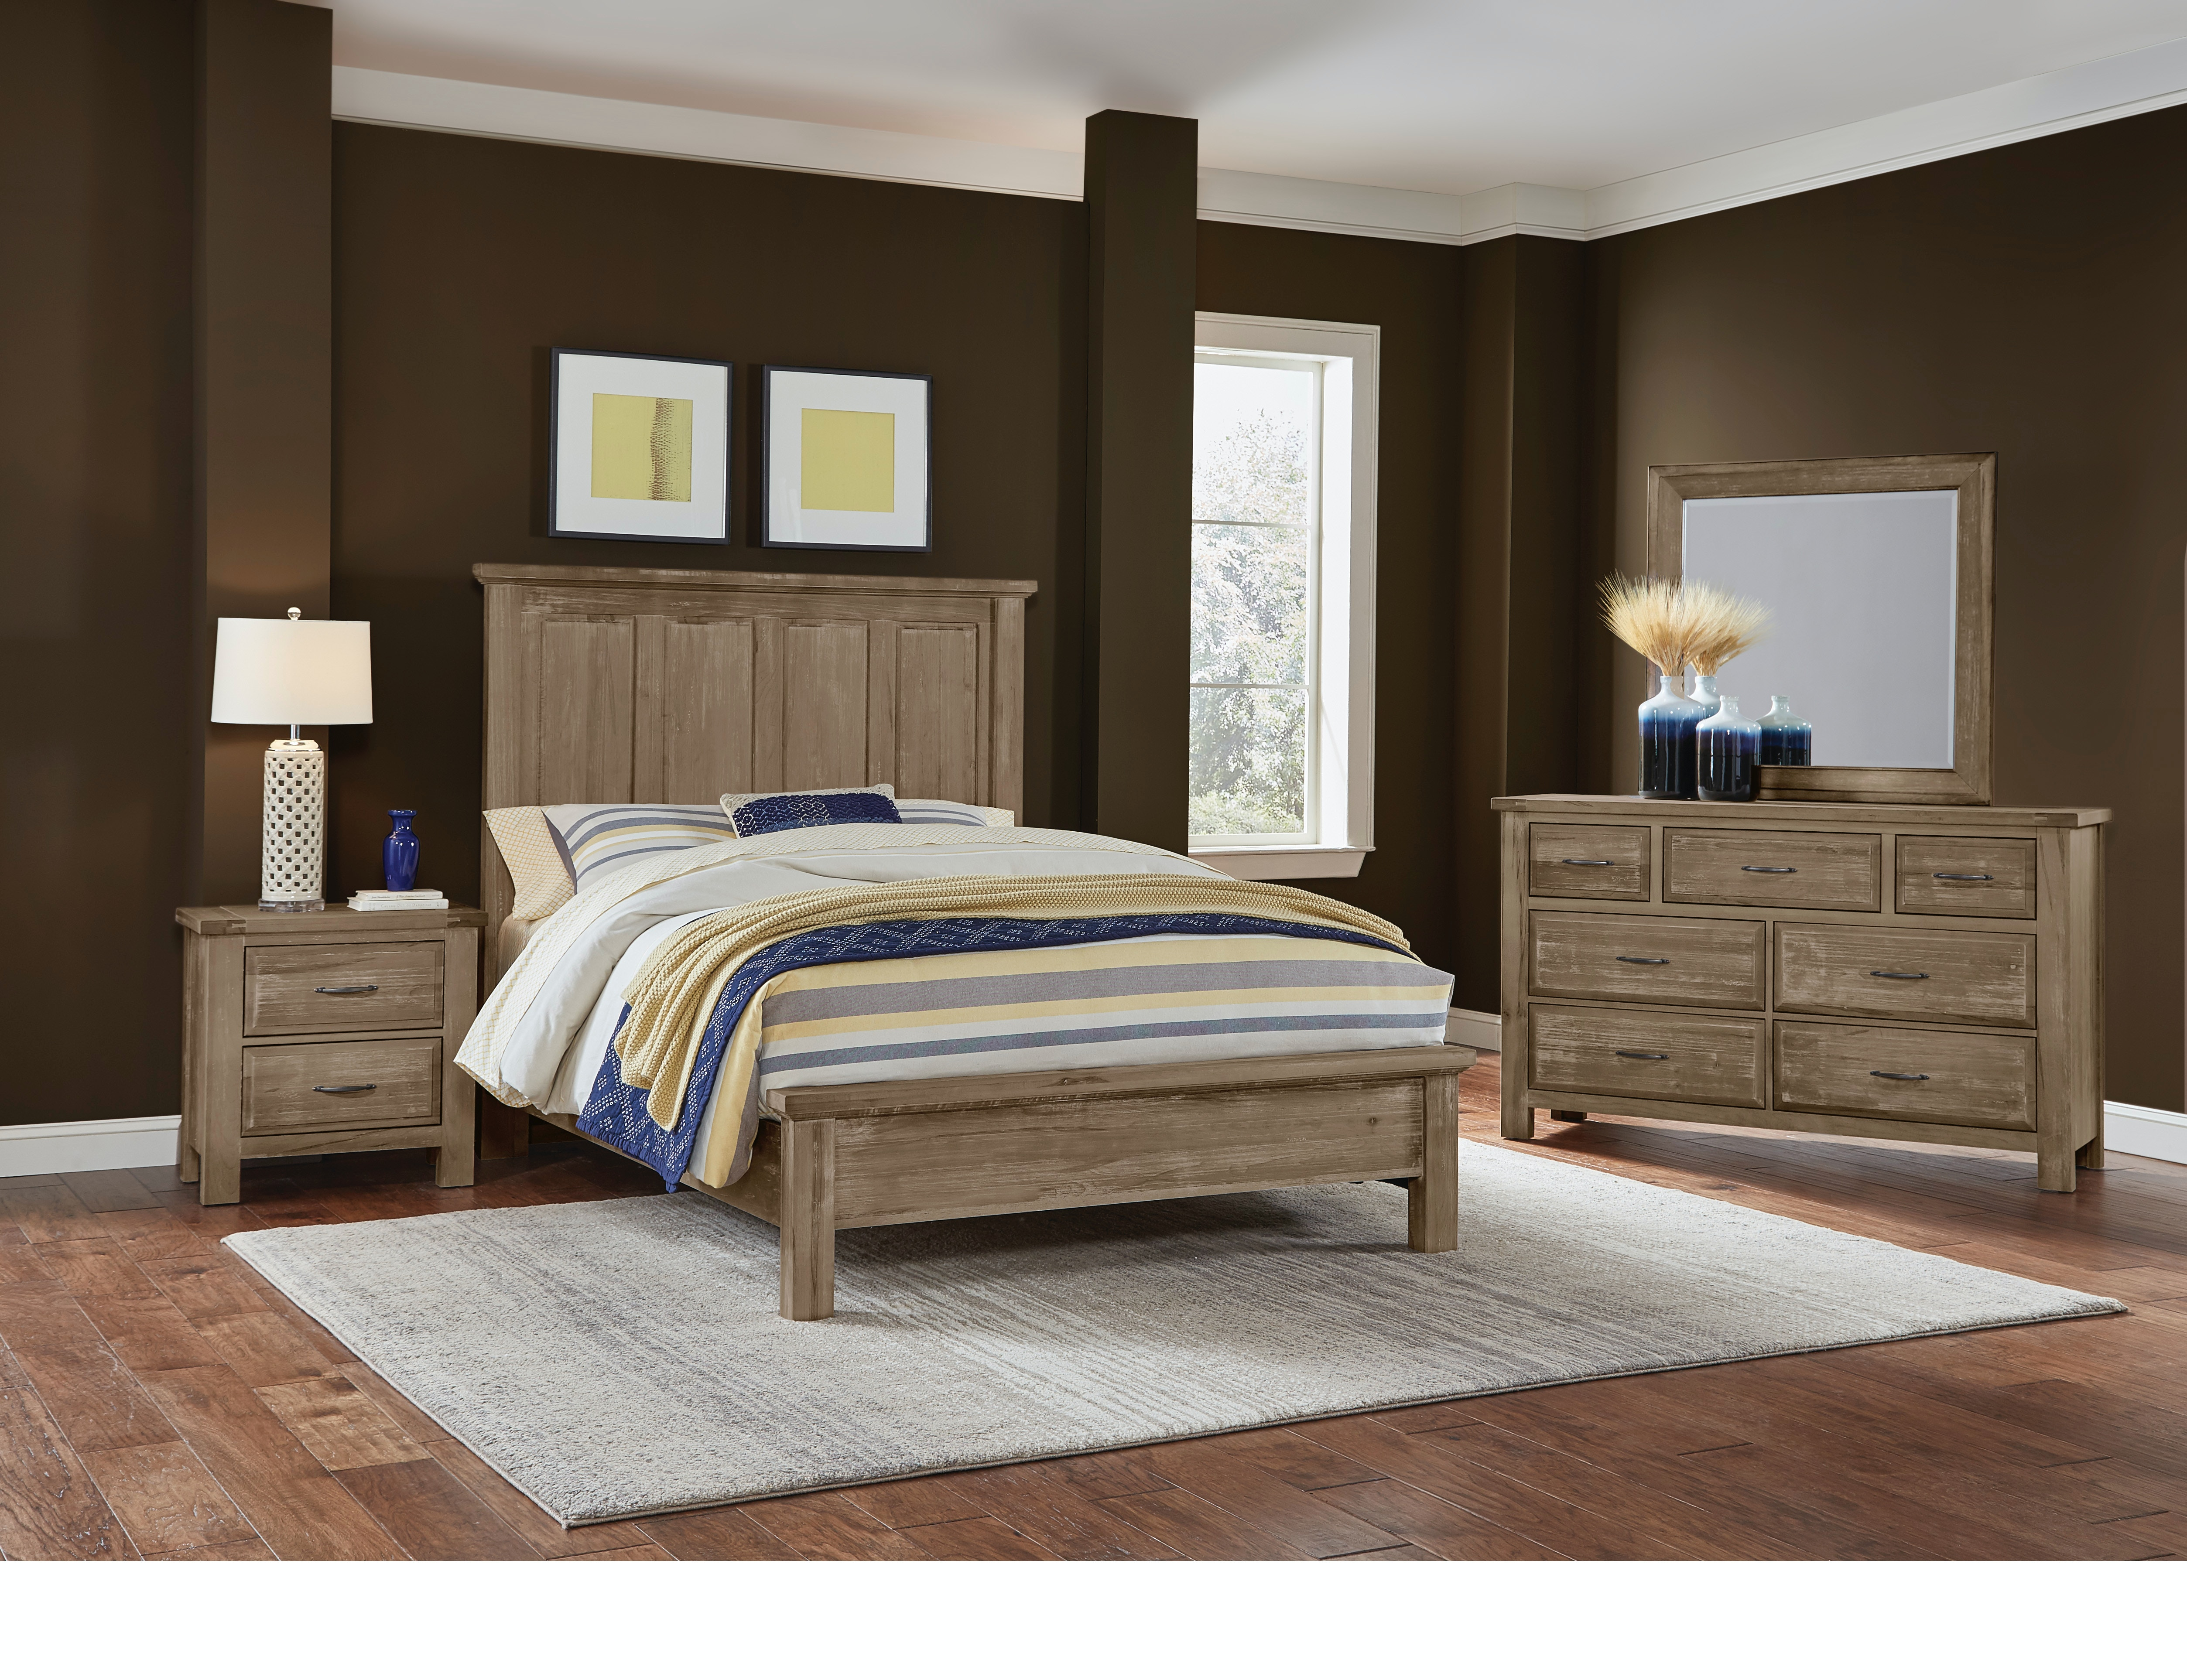 Artisan Amp Post Bedroom Maple Road Weathered Gray Mansion